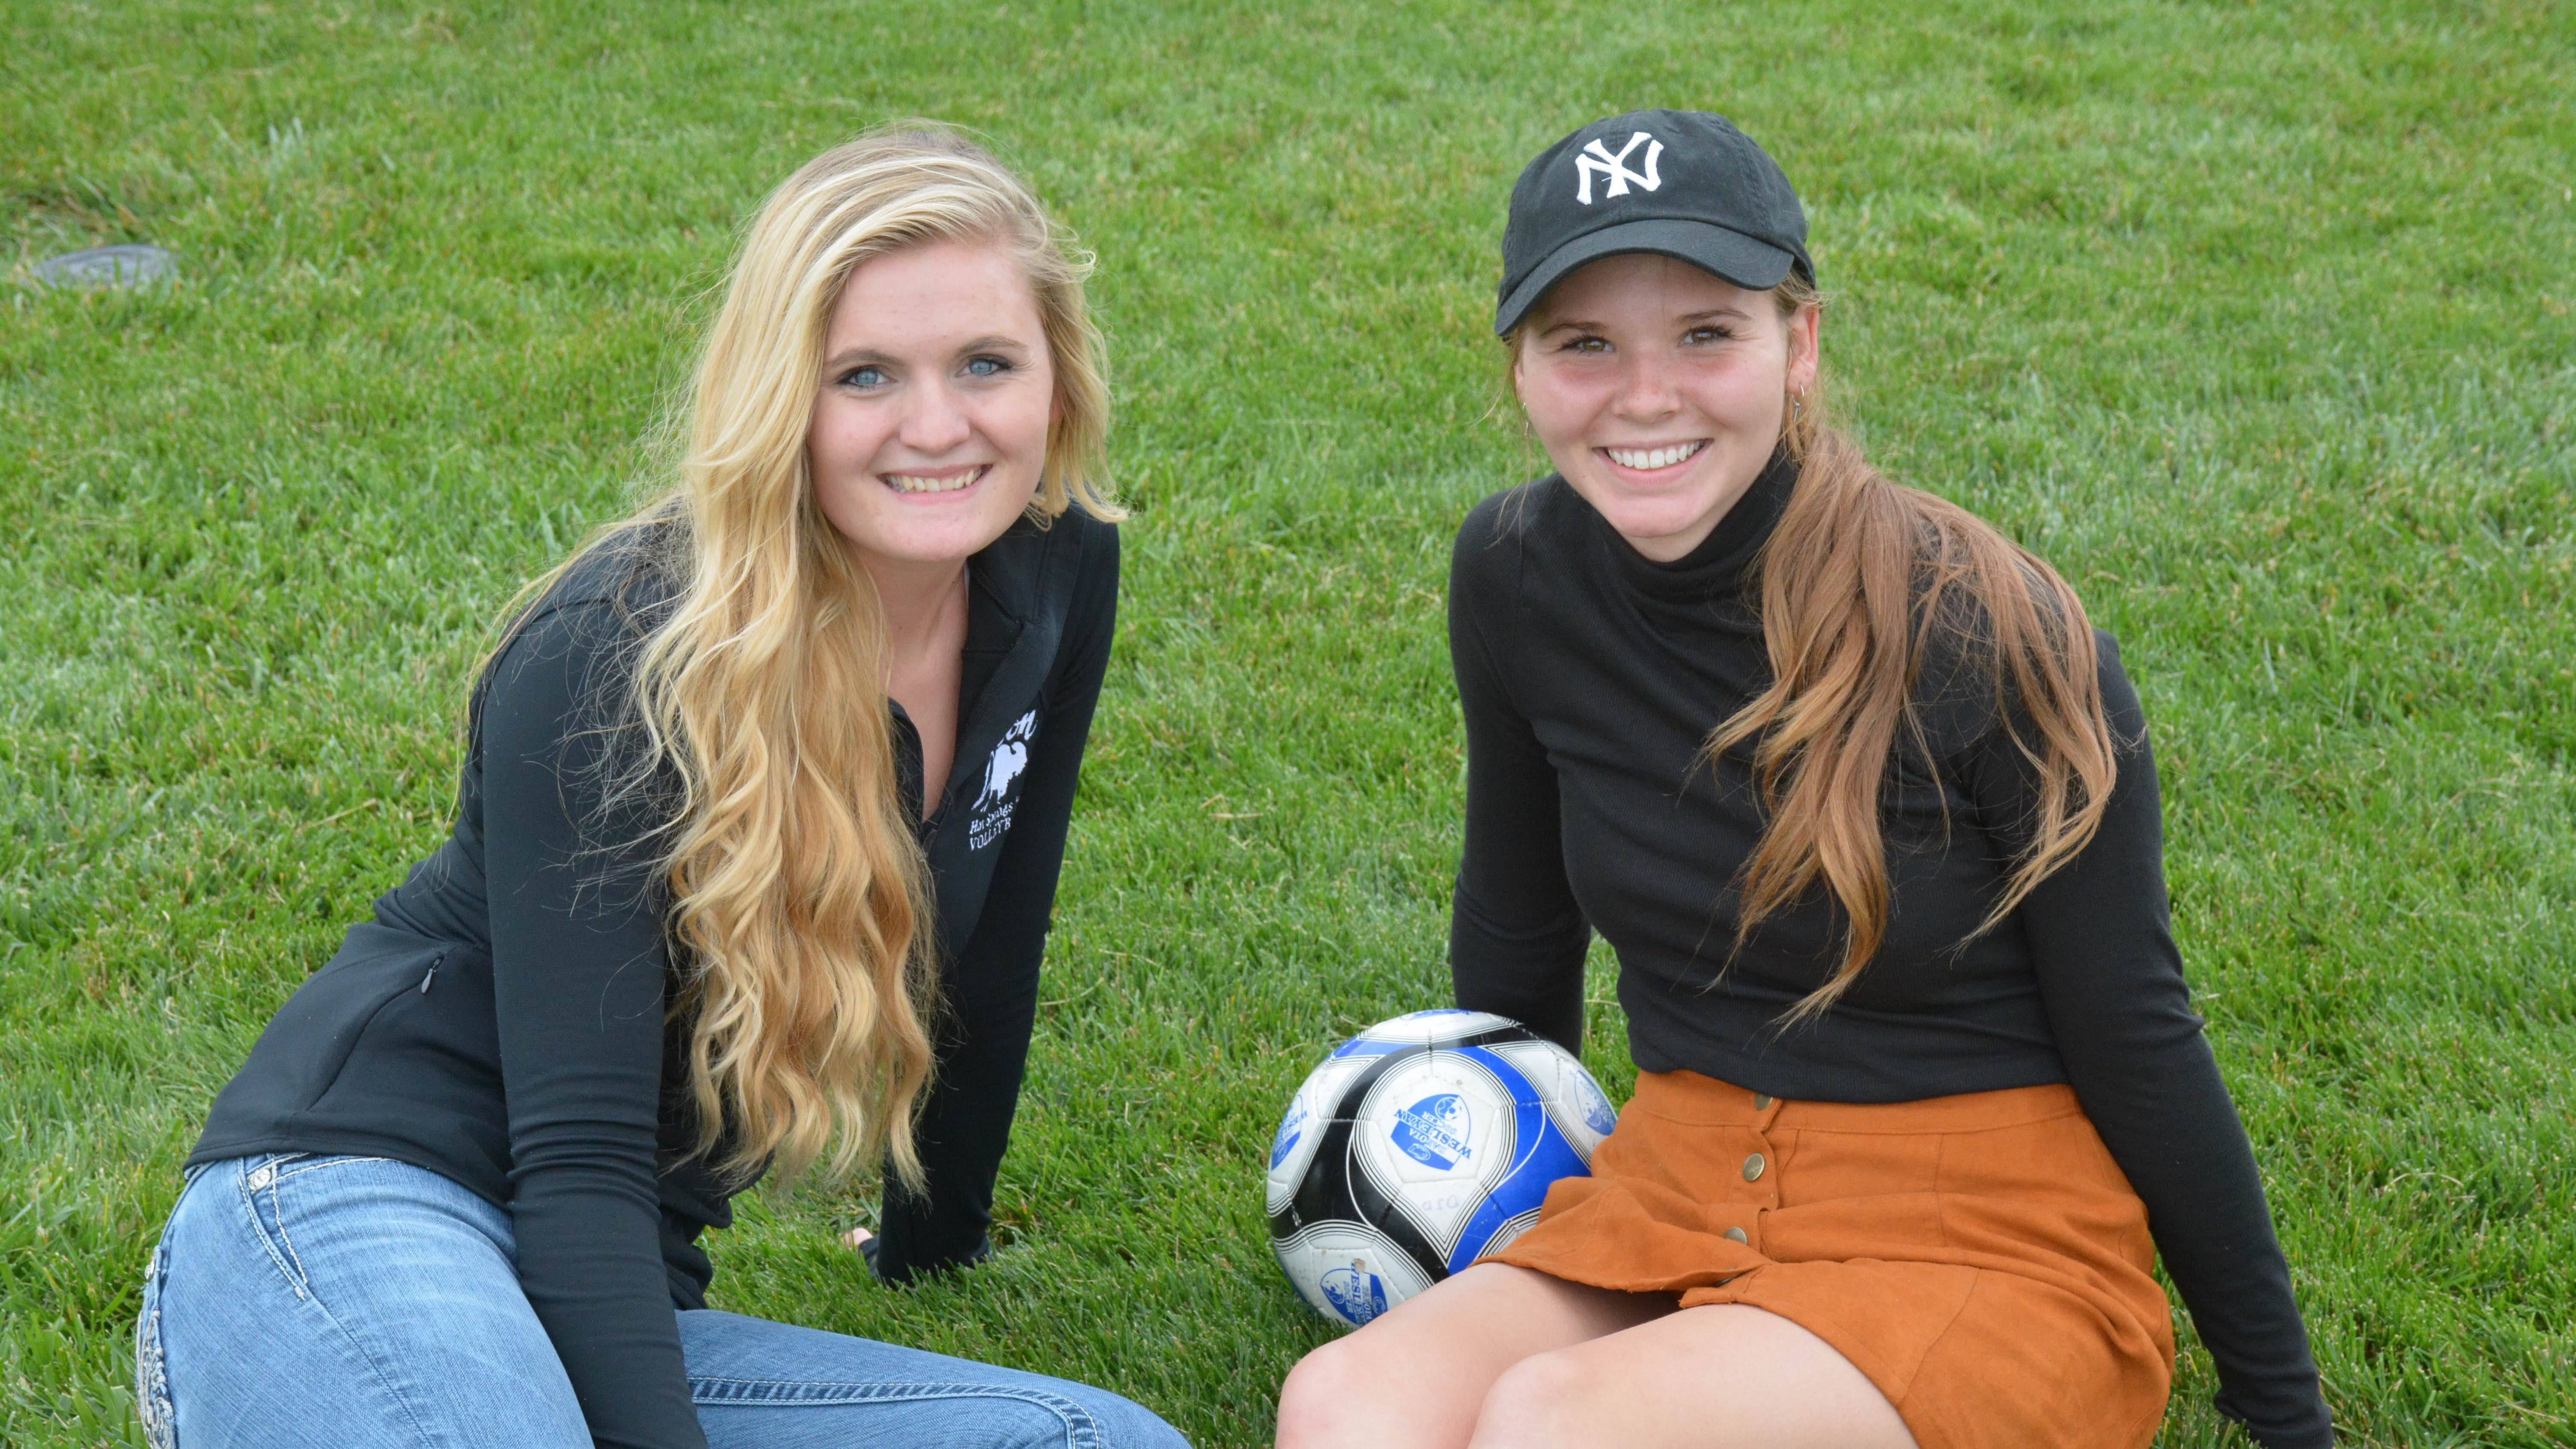 Diamond Miller and Aspen Stover, soccer players